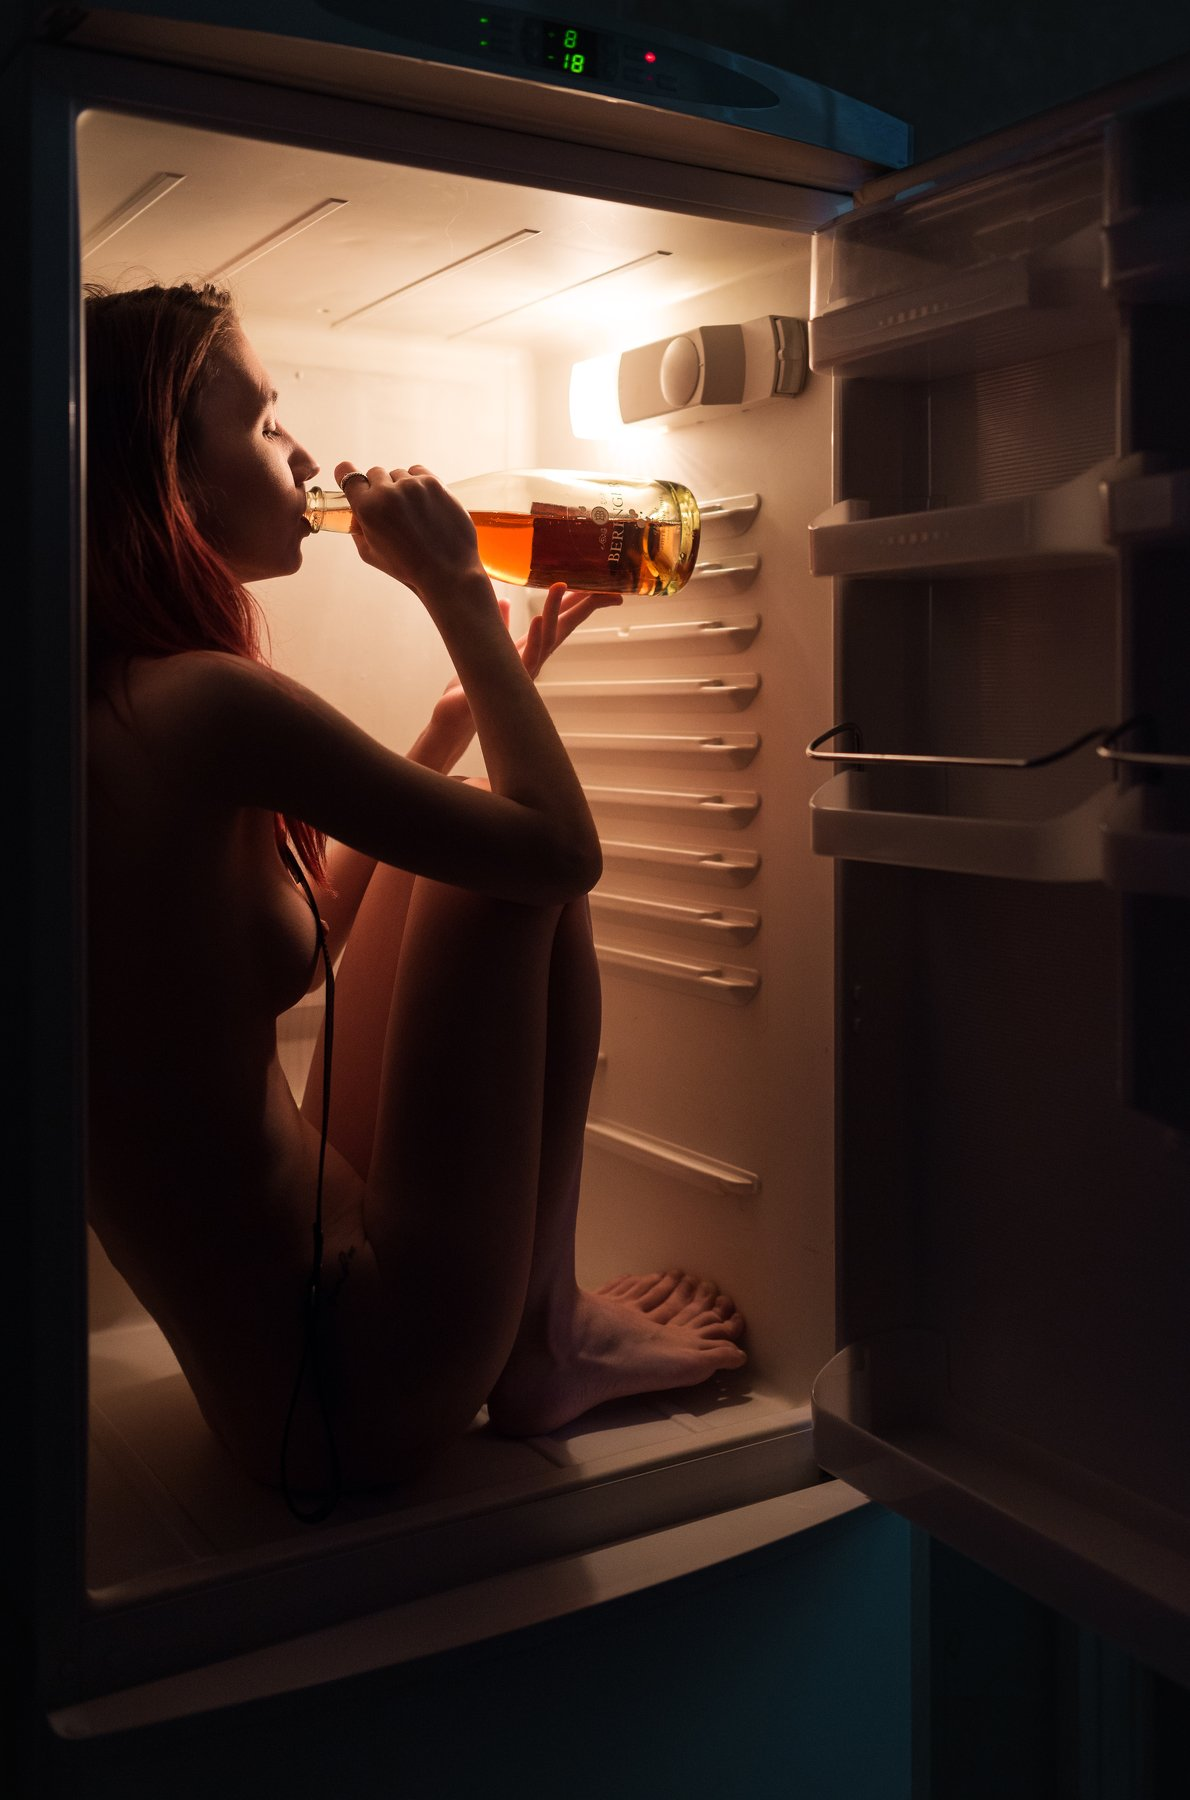 girl, drink, alcohol, fridge, vine, nude, slave, naked, nu, saint-petersburg, Роман Филиппов